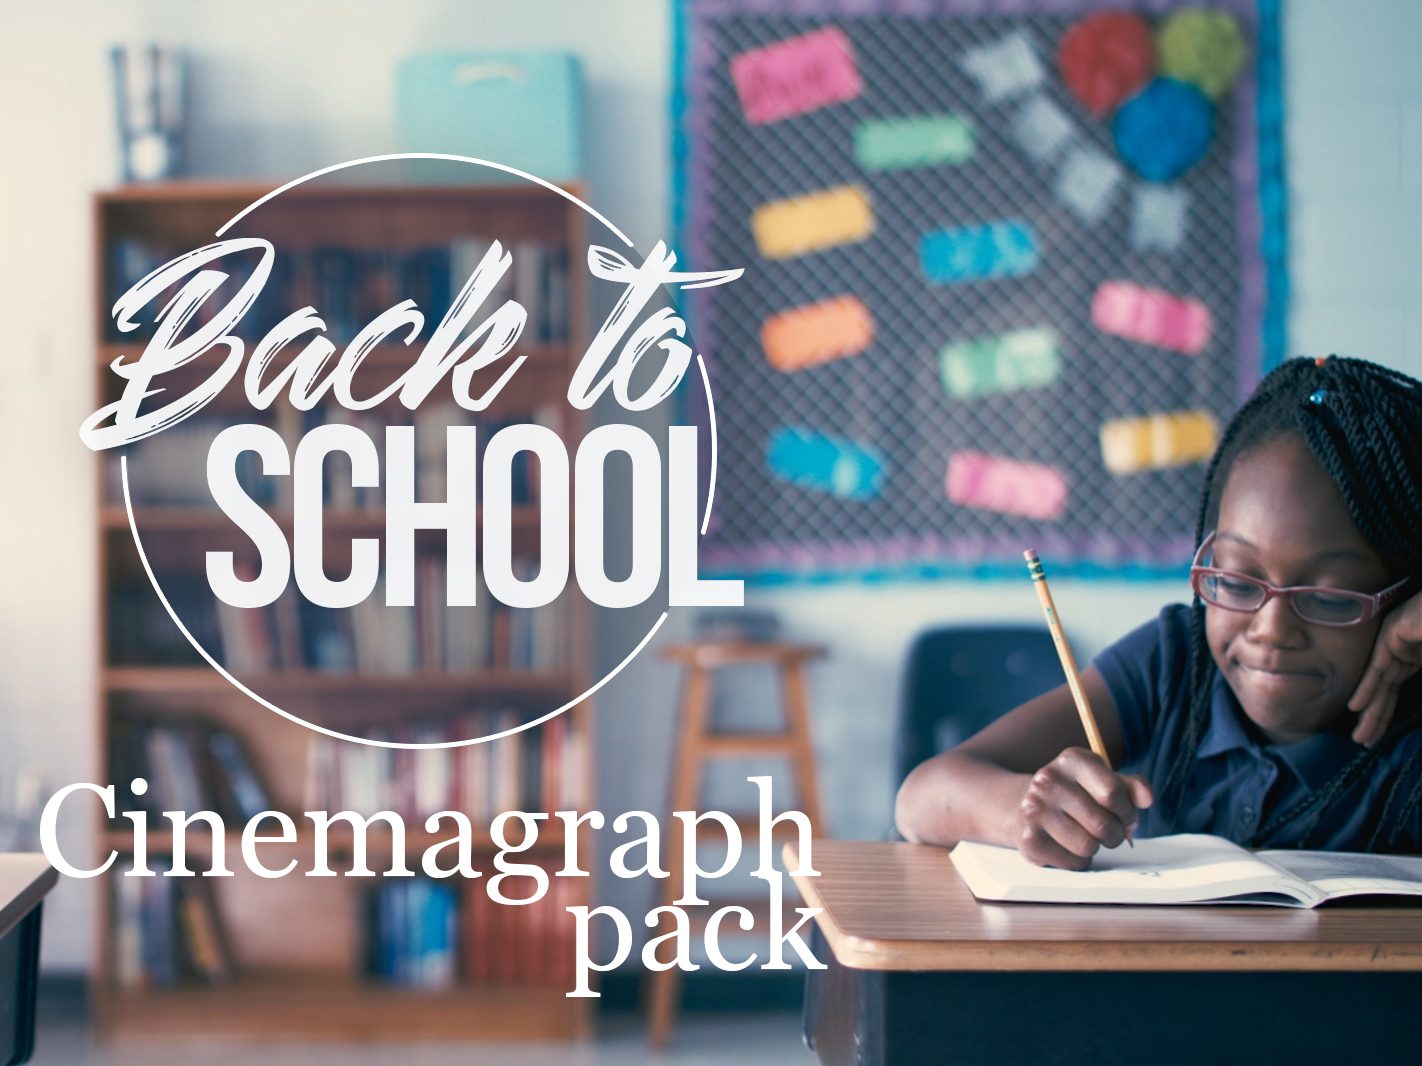 BACK TO SCHOOL CINEMAGRAPH PACK